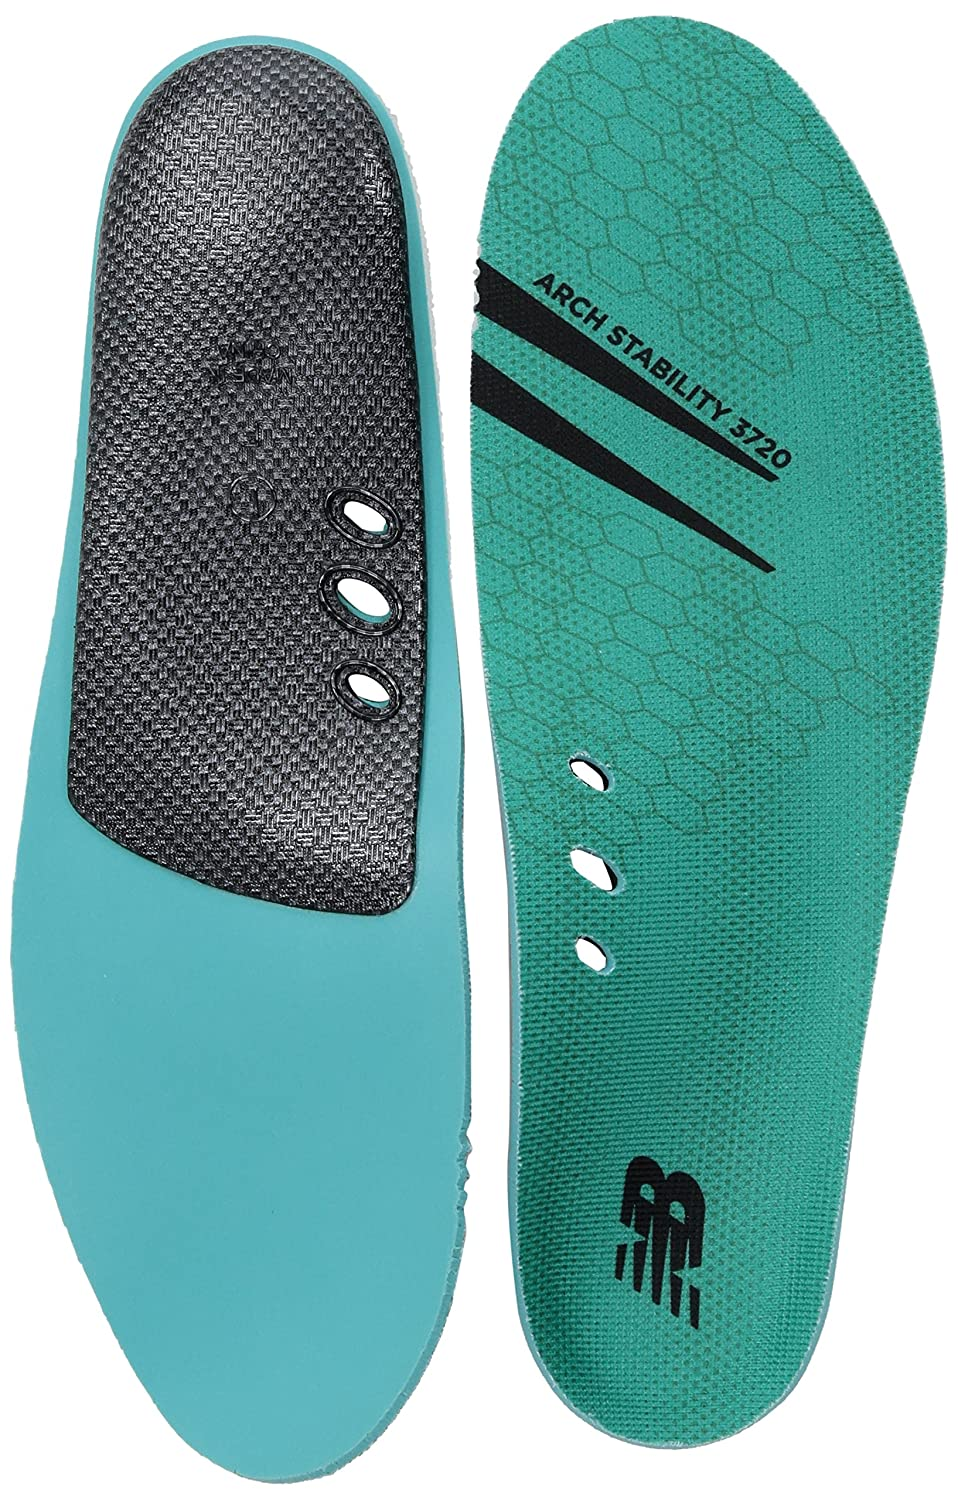 New Balance Insoles |